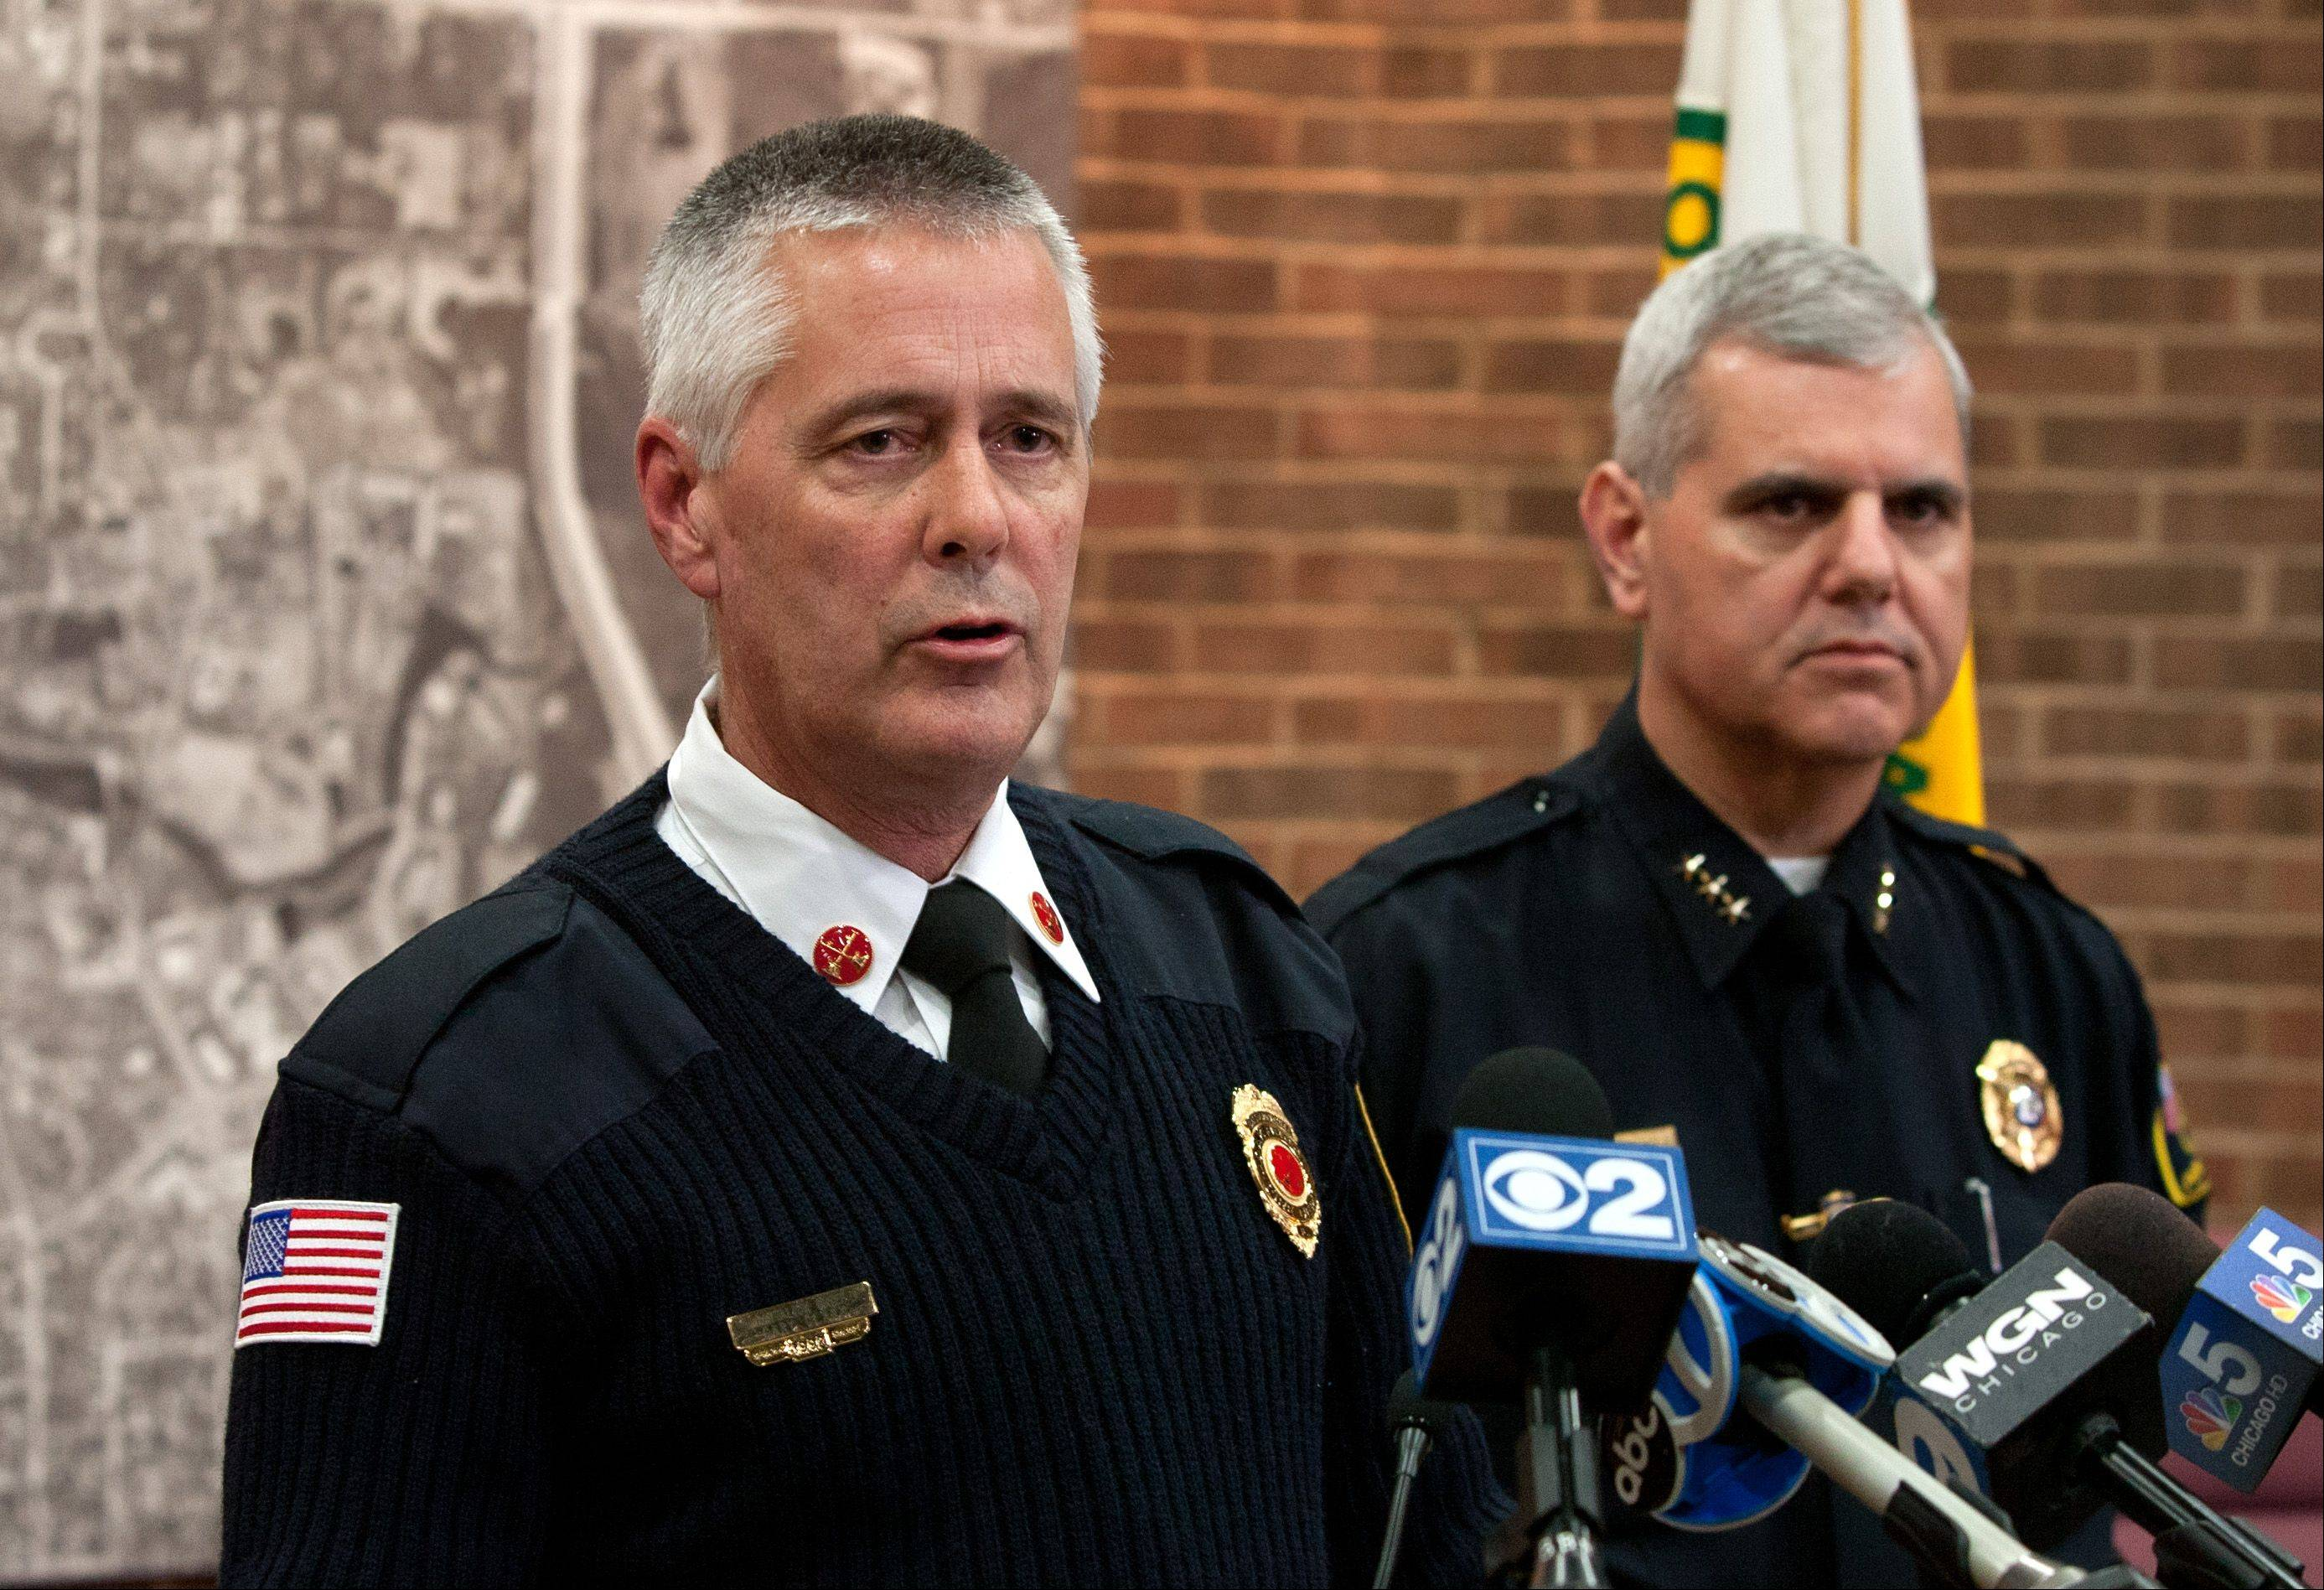 Acting Oak Brook Fire Chief Gary Clark, left, and Oak Brook Chief of Police James Kruger discuss their investigation of a fatal Carbon Monoxide poisoning death at a home in the 2900 block of Oak Brook Hills Road in Oak Brook.